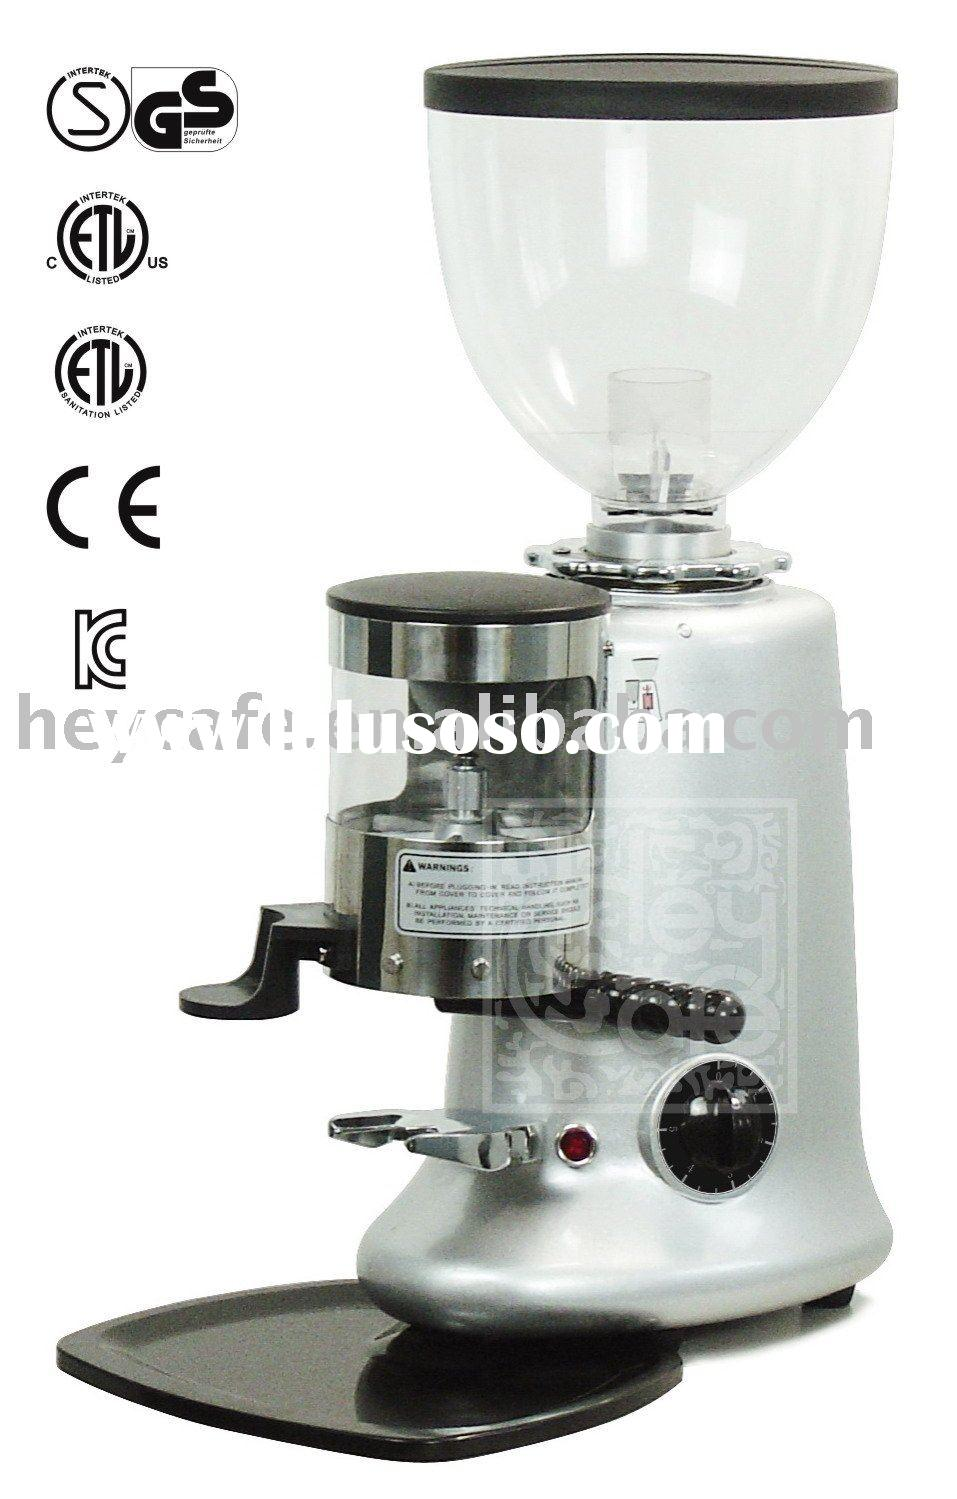 HC-600T commercial coffee grinder